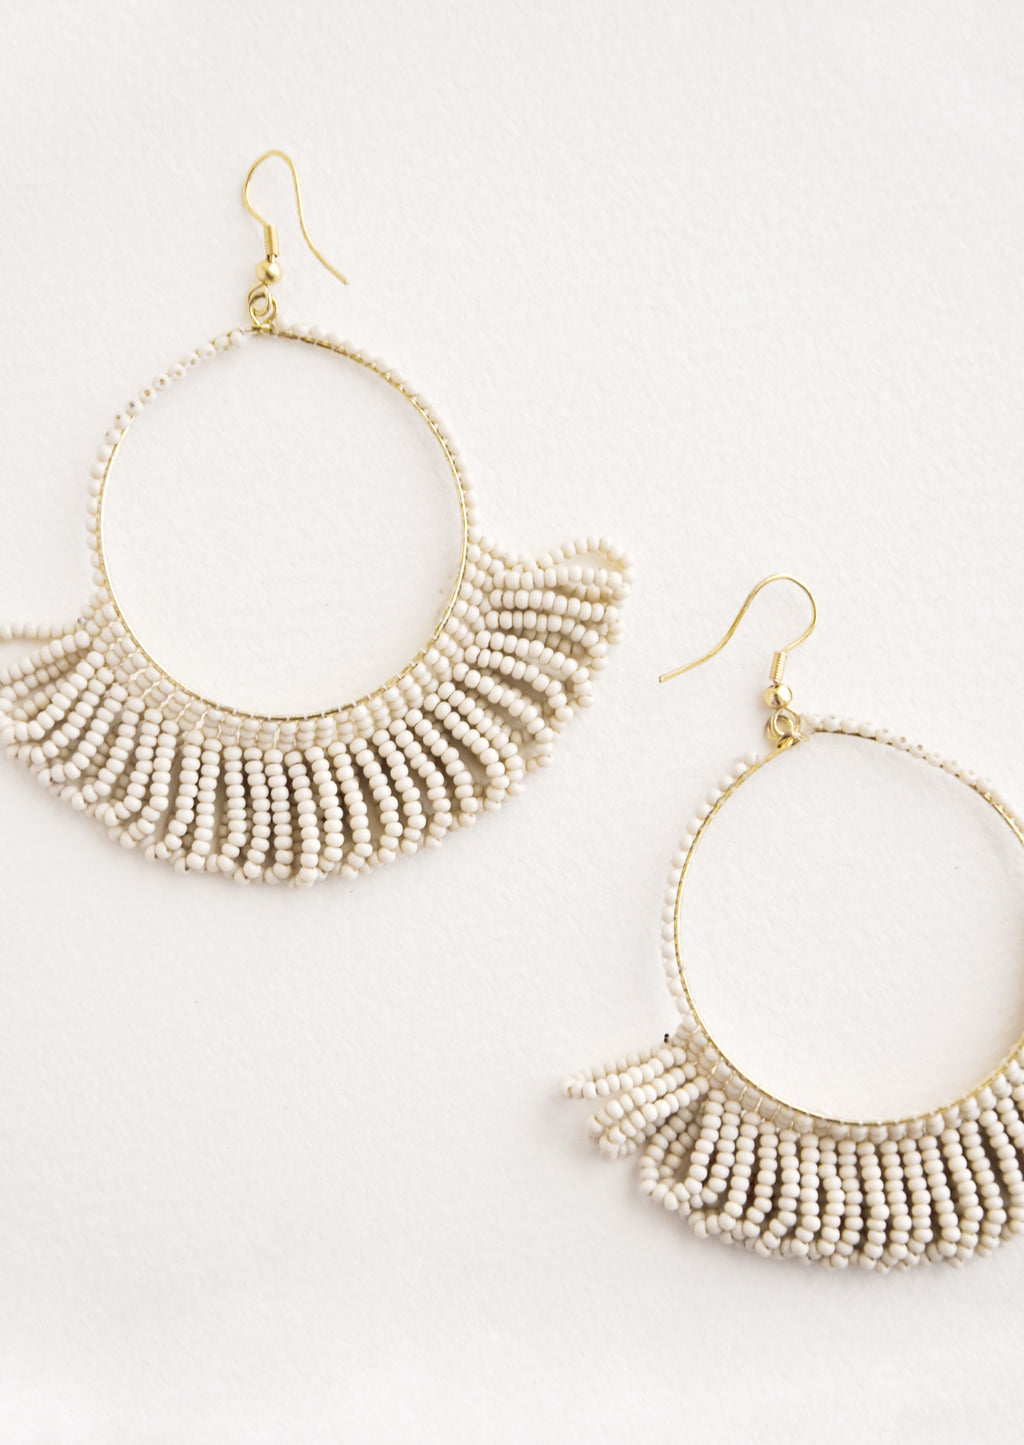 Vanilla: Dangling hoop earrings featuring light grey beads and accented with hanging beaded, looped fringe.